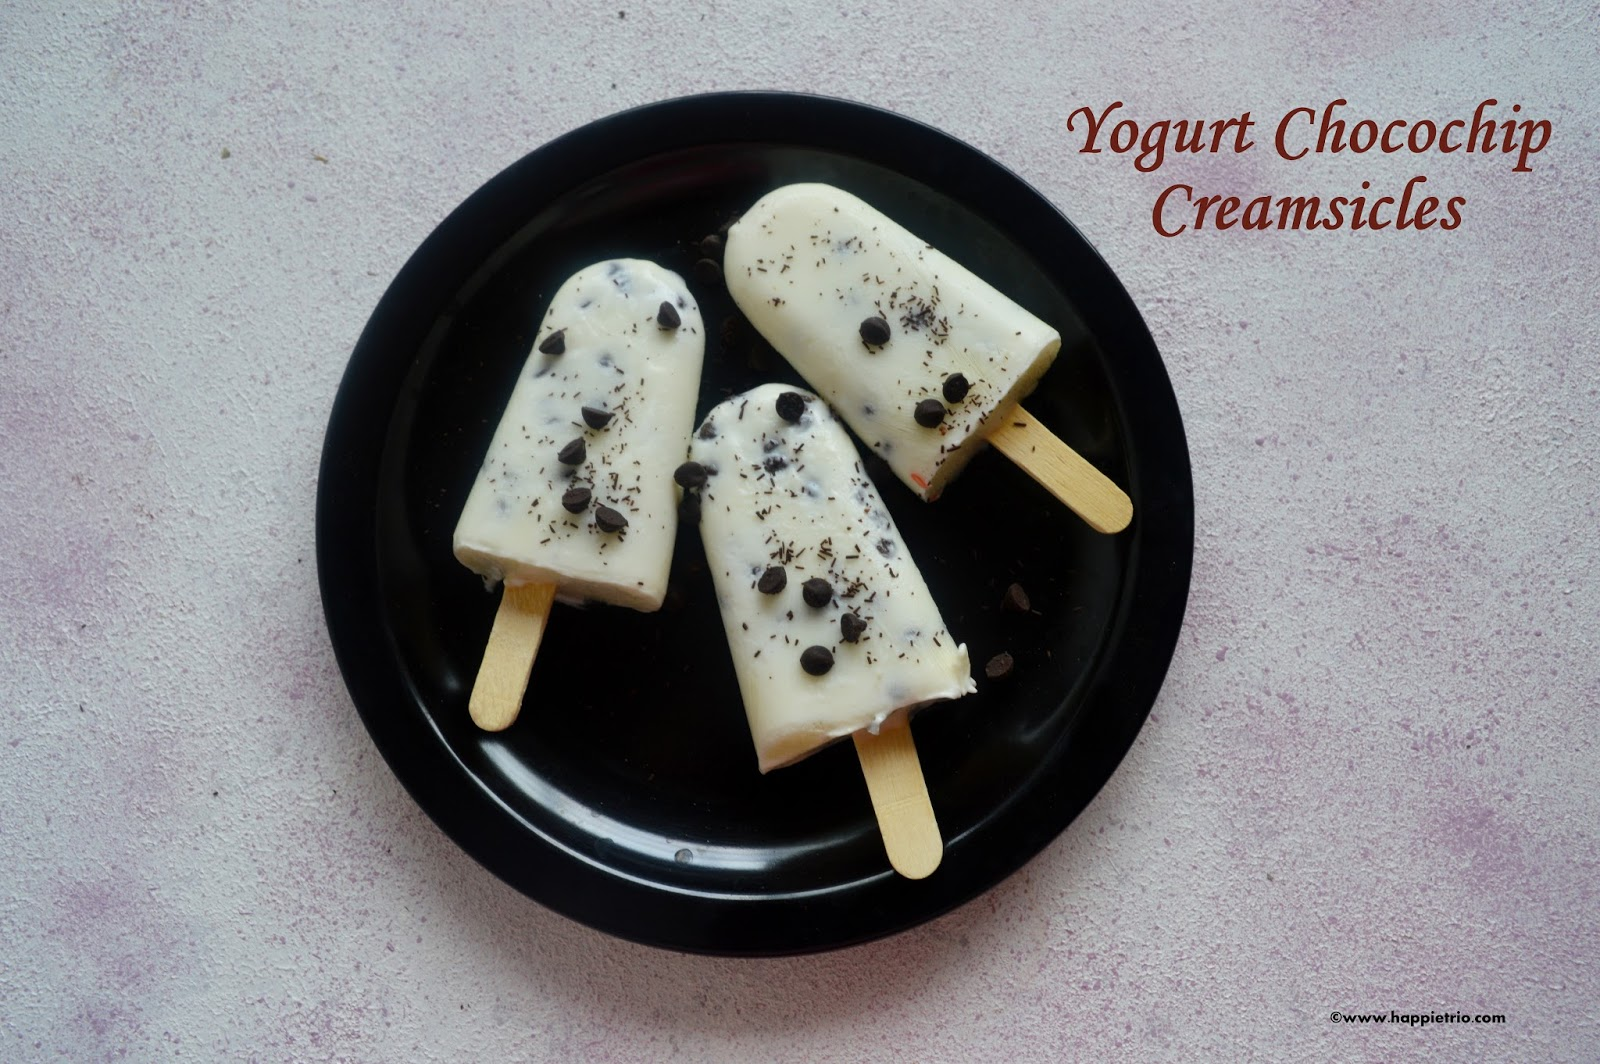 Yogurt Chocochip Popsicles